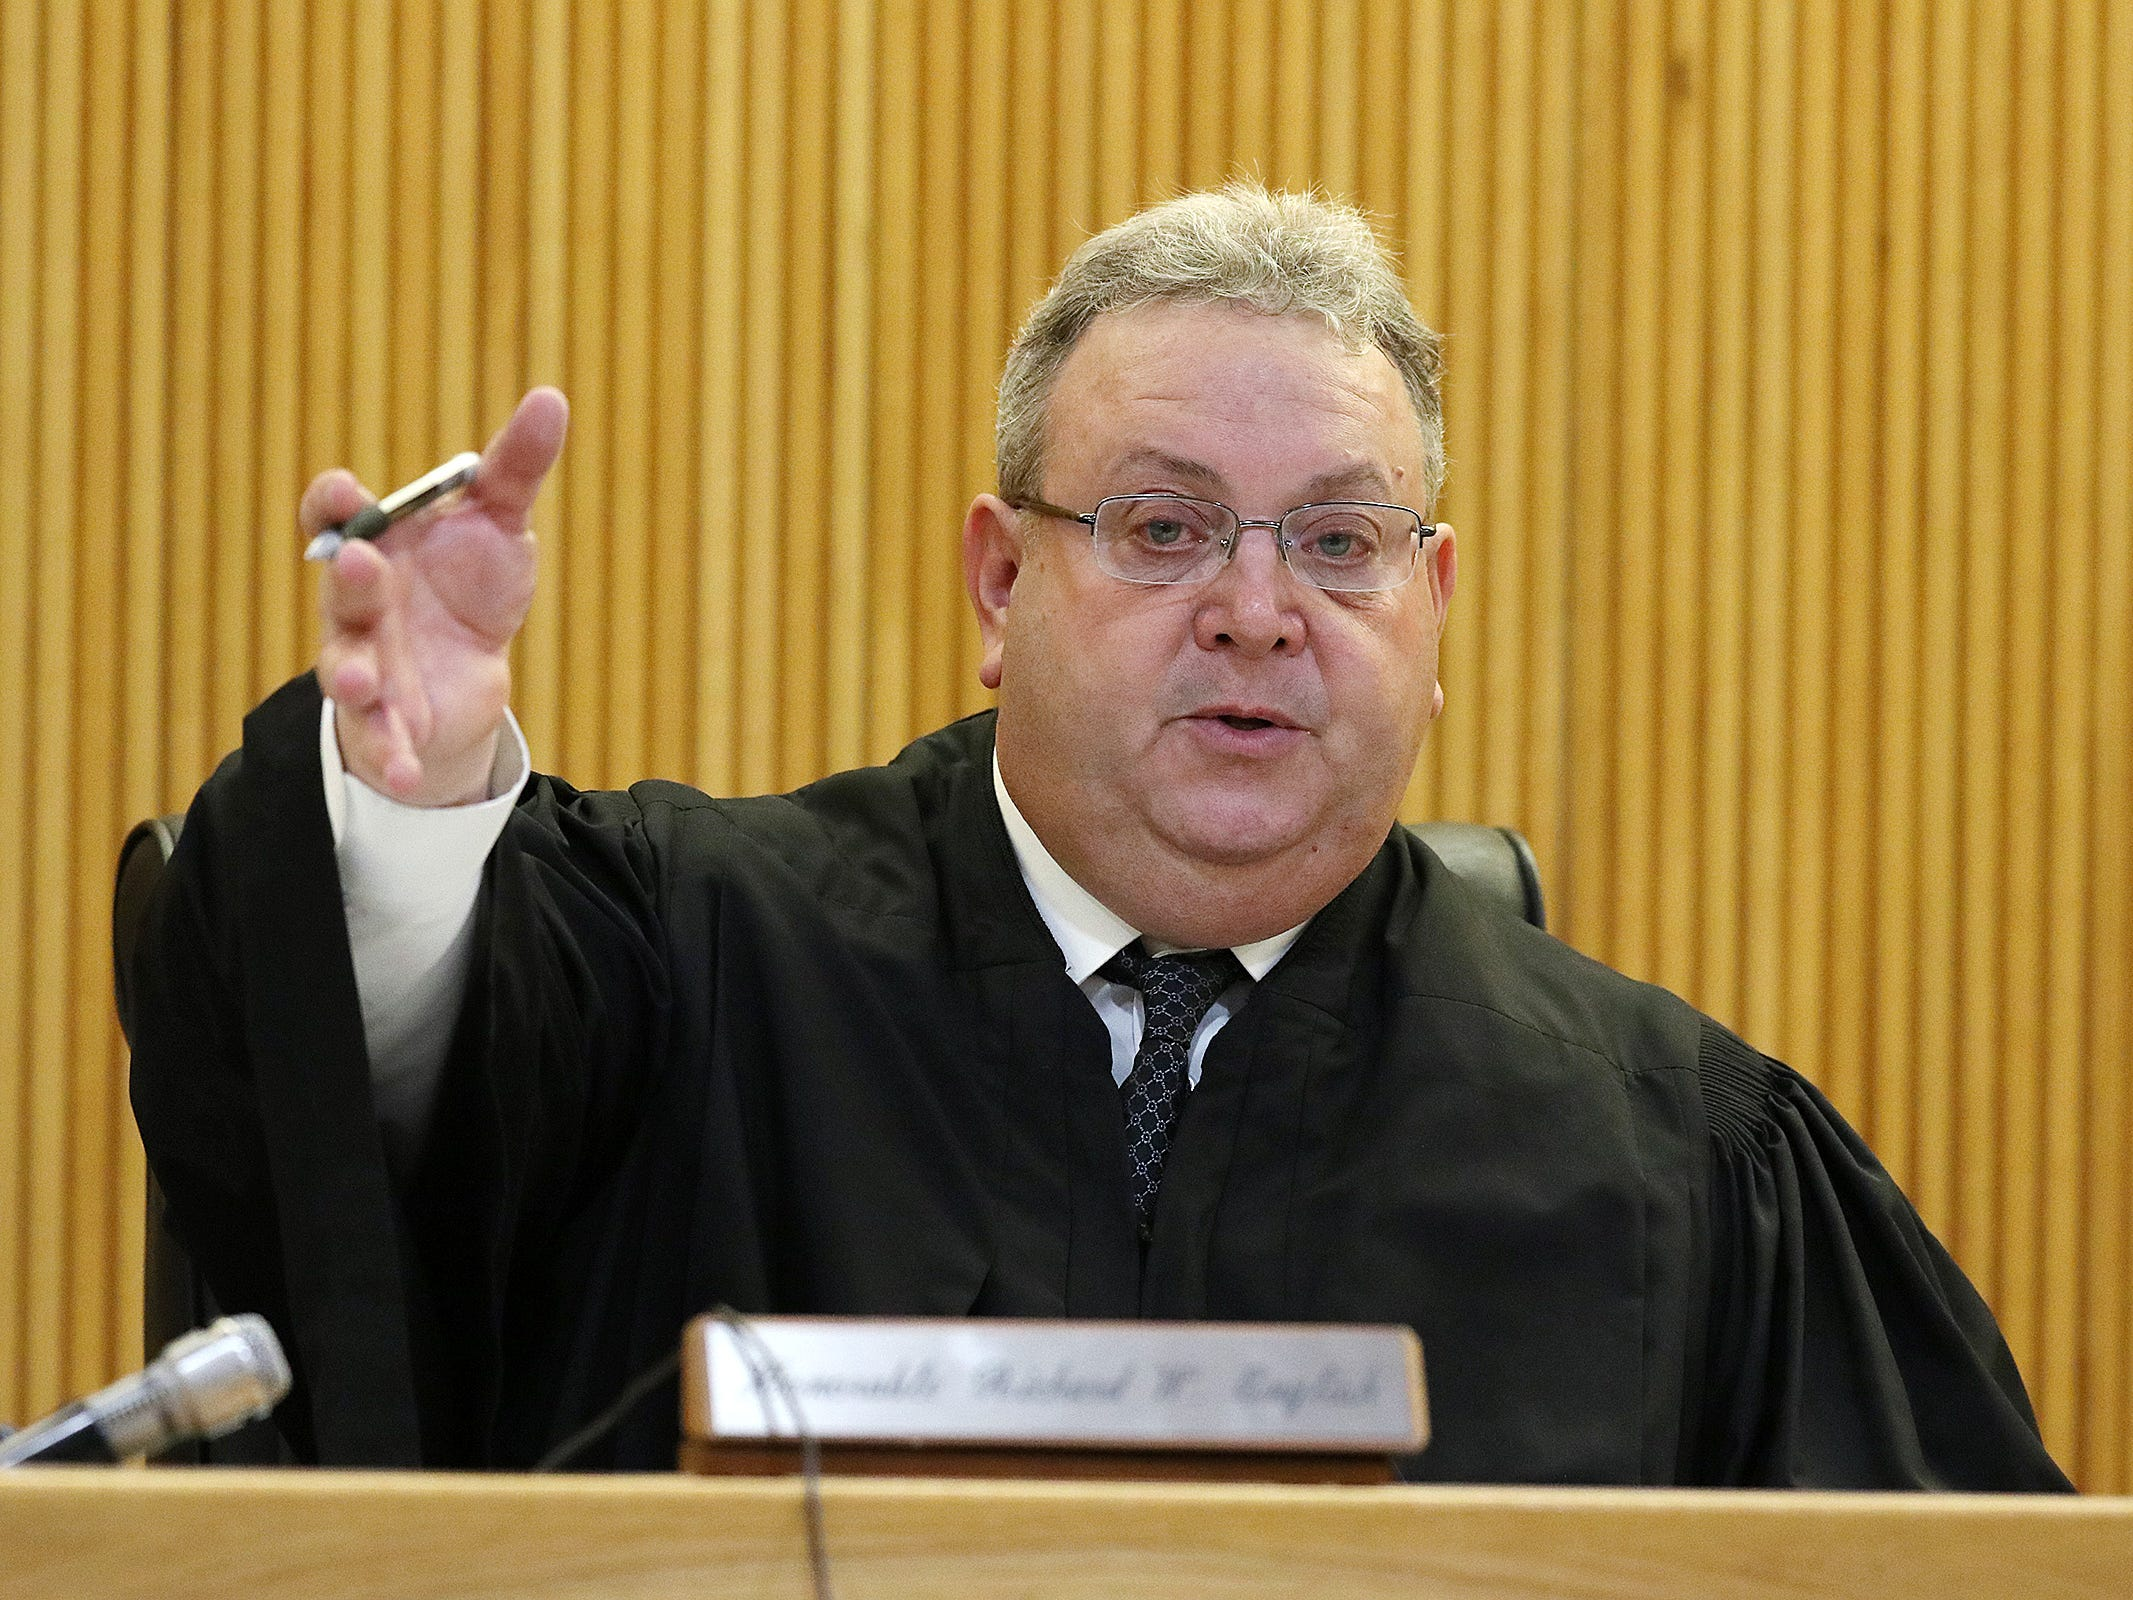 Superior Court Judge Richard W. English conferences with attorneys to amend the language in the judge's charge to the jury before closing statements during the trial of Liam McAtasney, who is charged with the murder of former high school classmate, Sarah Stern, at the Monmouth County Courthouse in Freehold, NJ Friday, February 22, 2019.